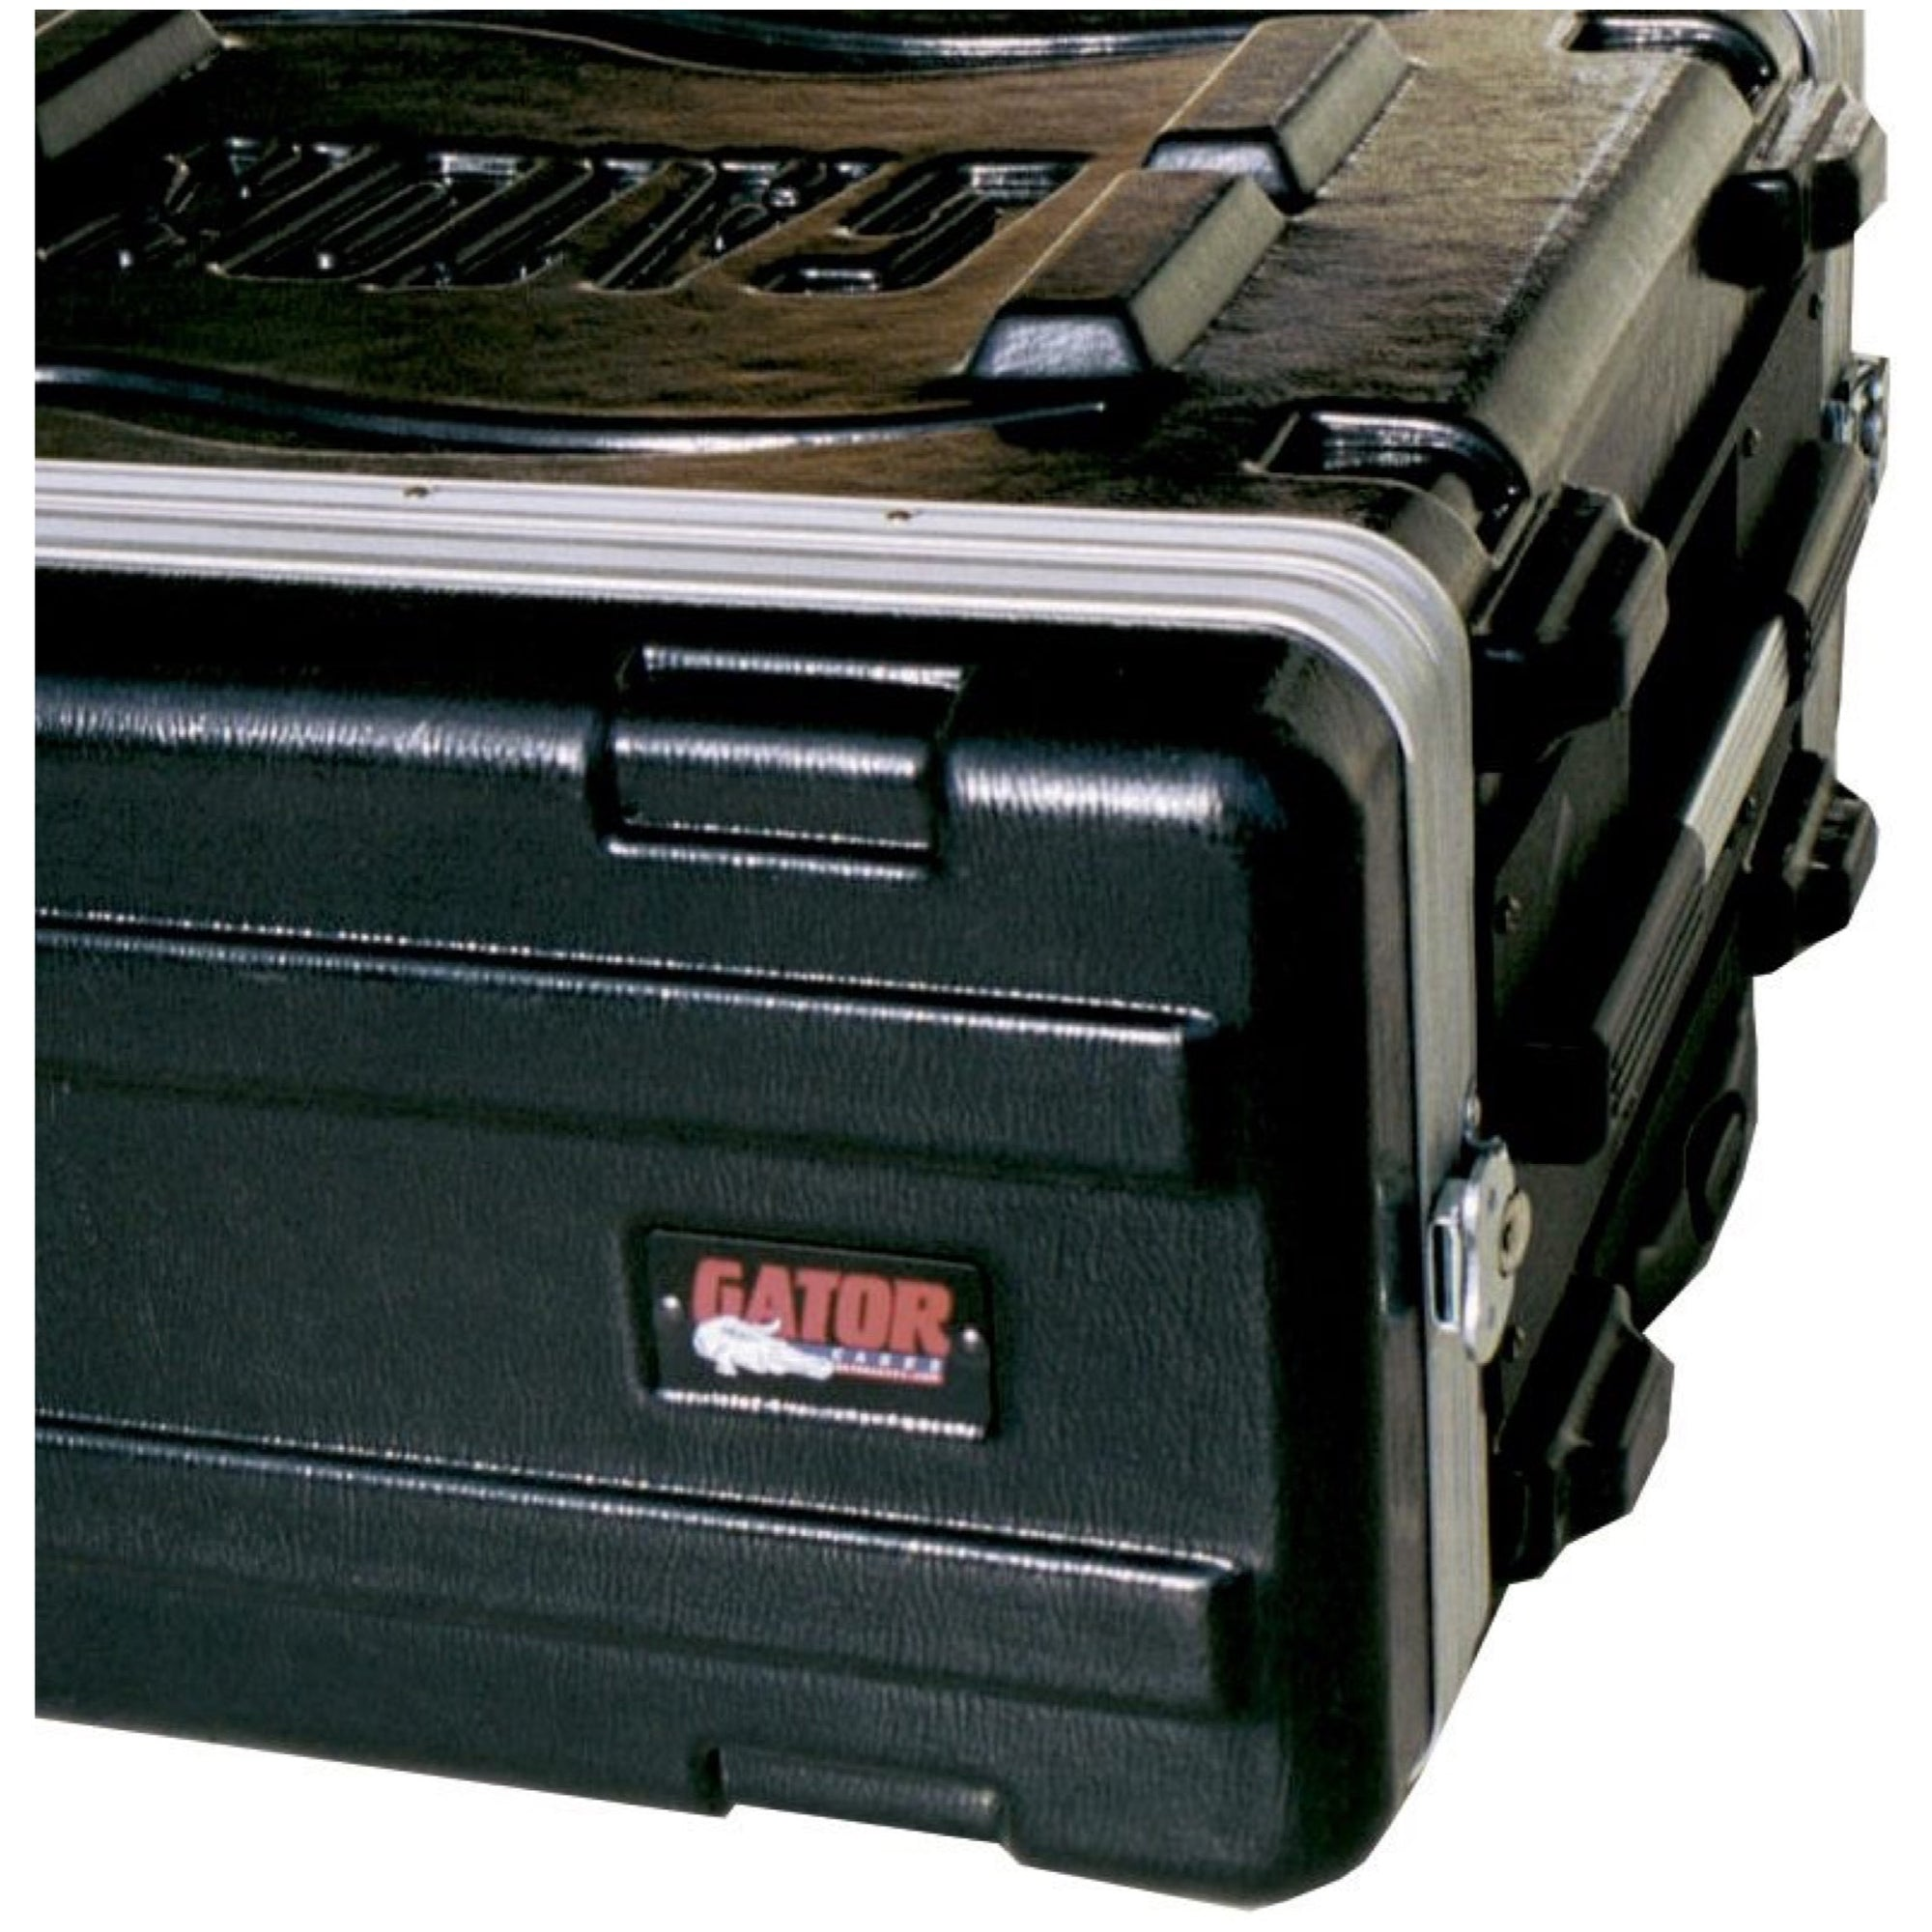 Gator Deluxe 19 Inch Rack Case, 2 Space